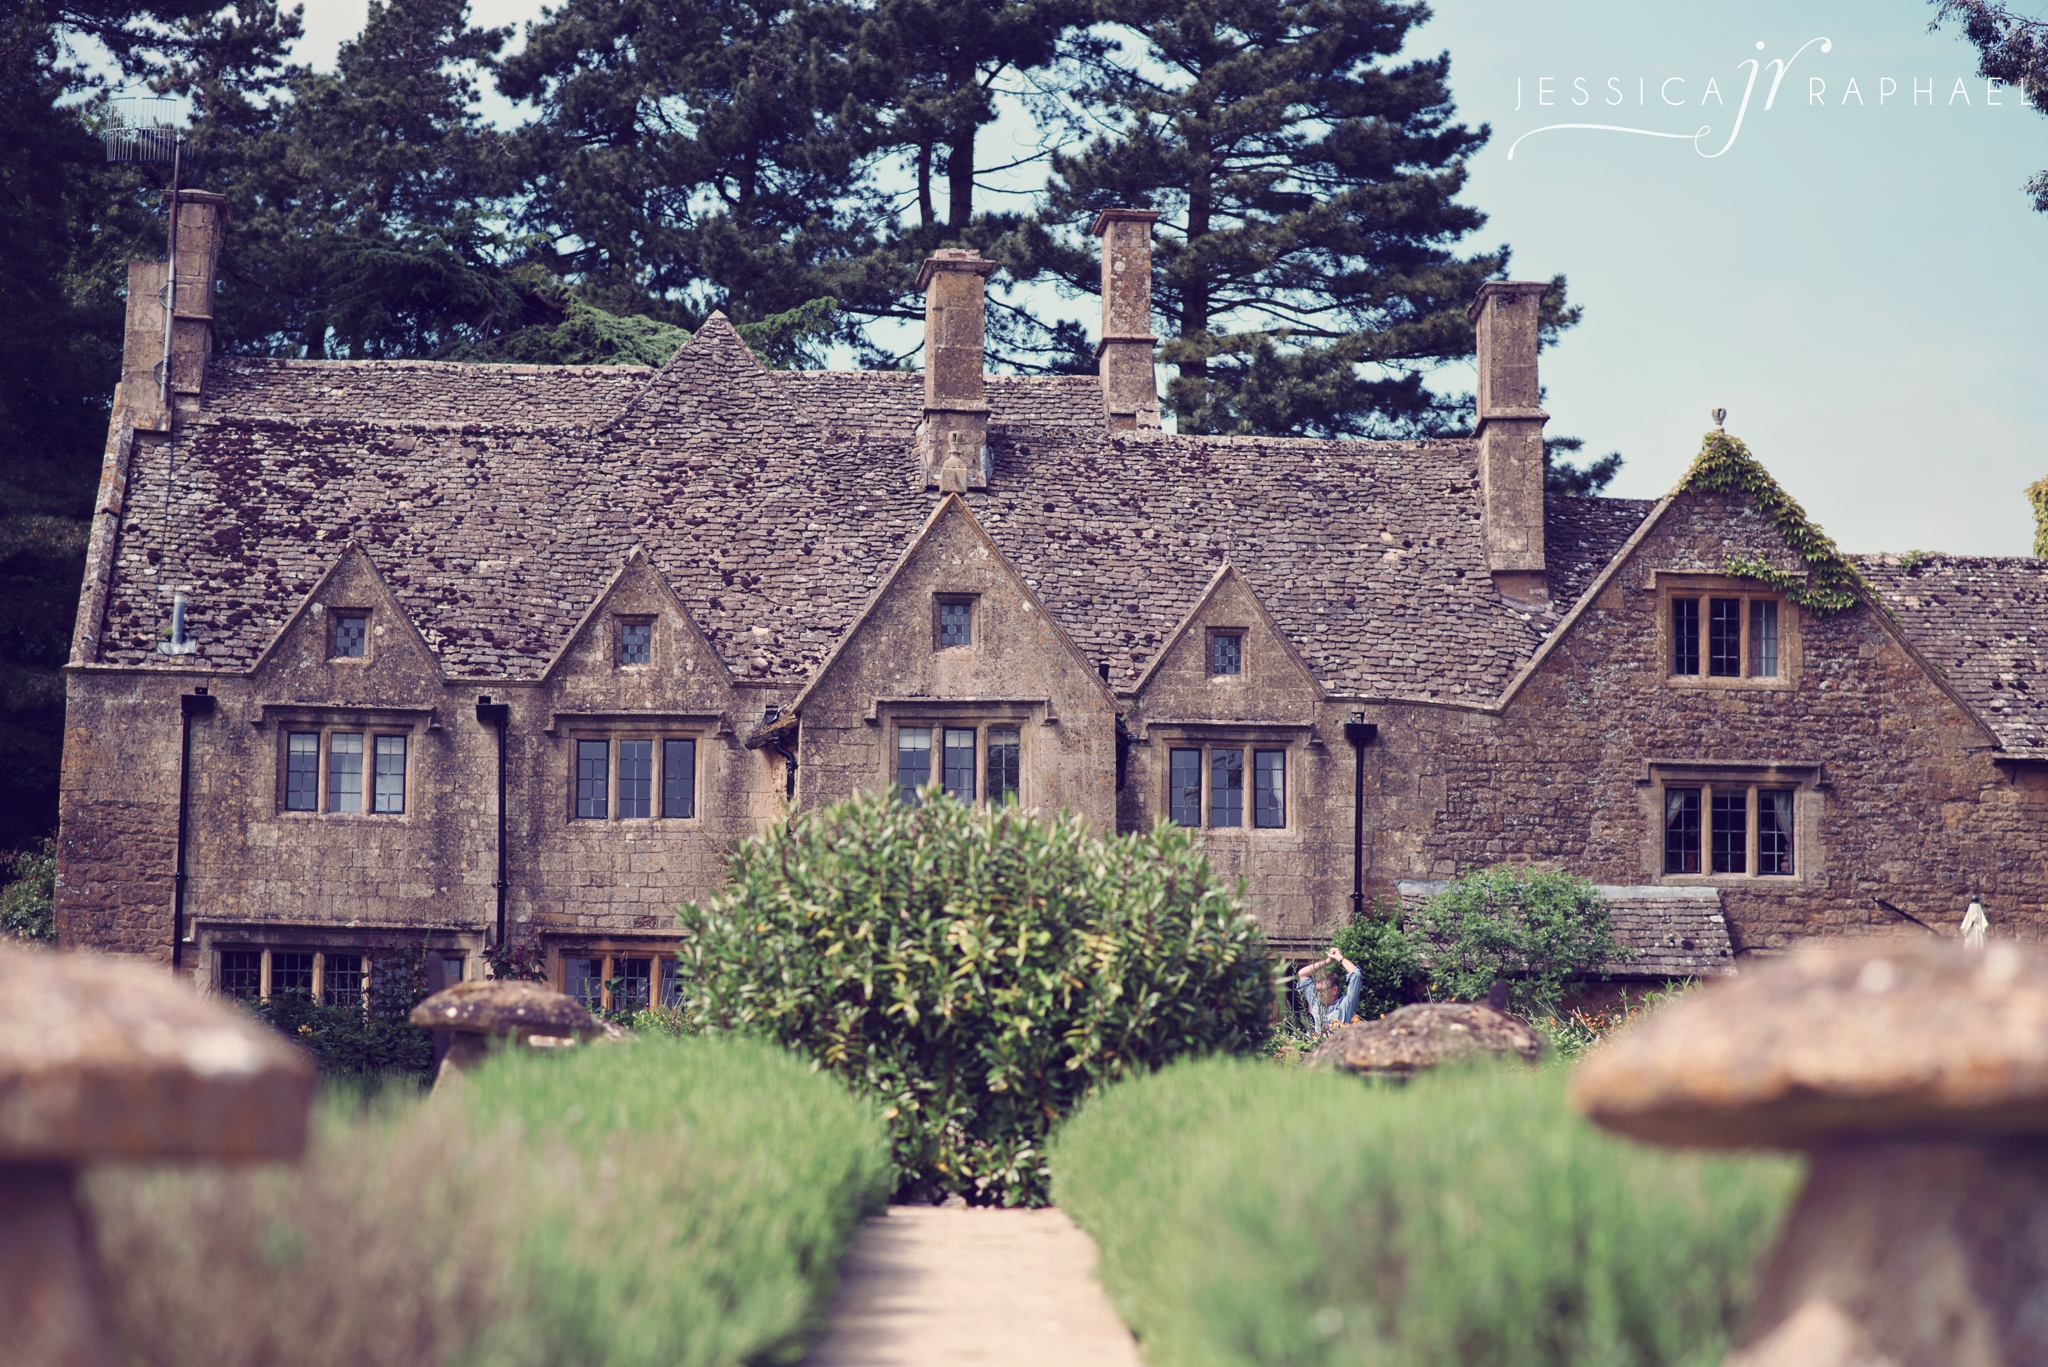 jessica-raphael-photography-chipping-campden-wedding-photographer